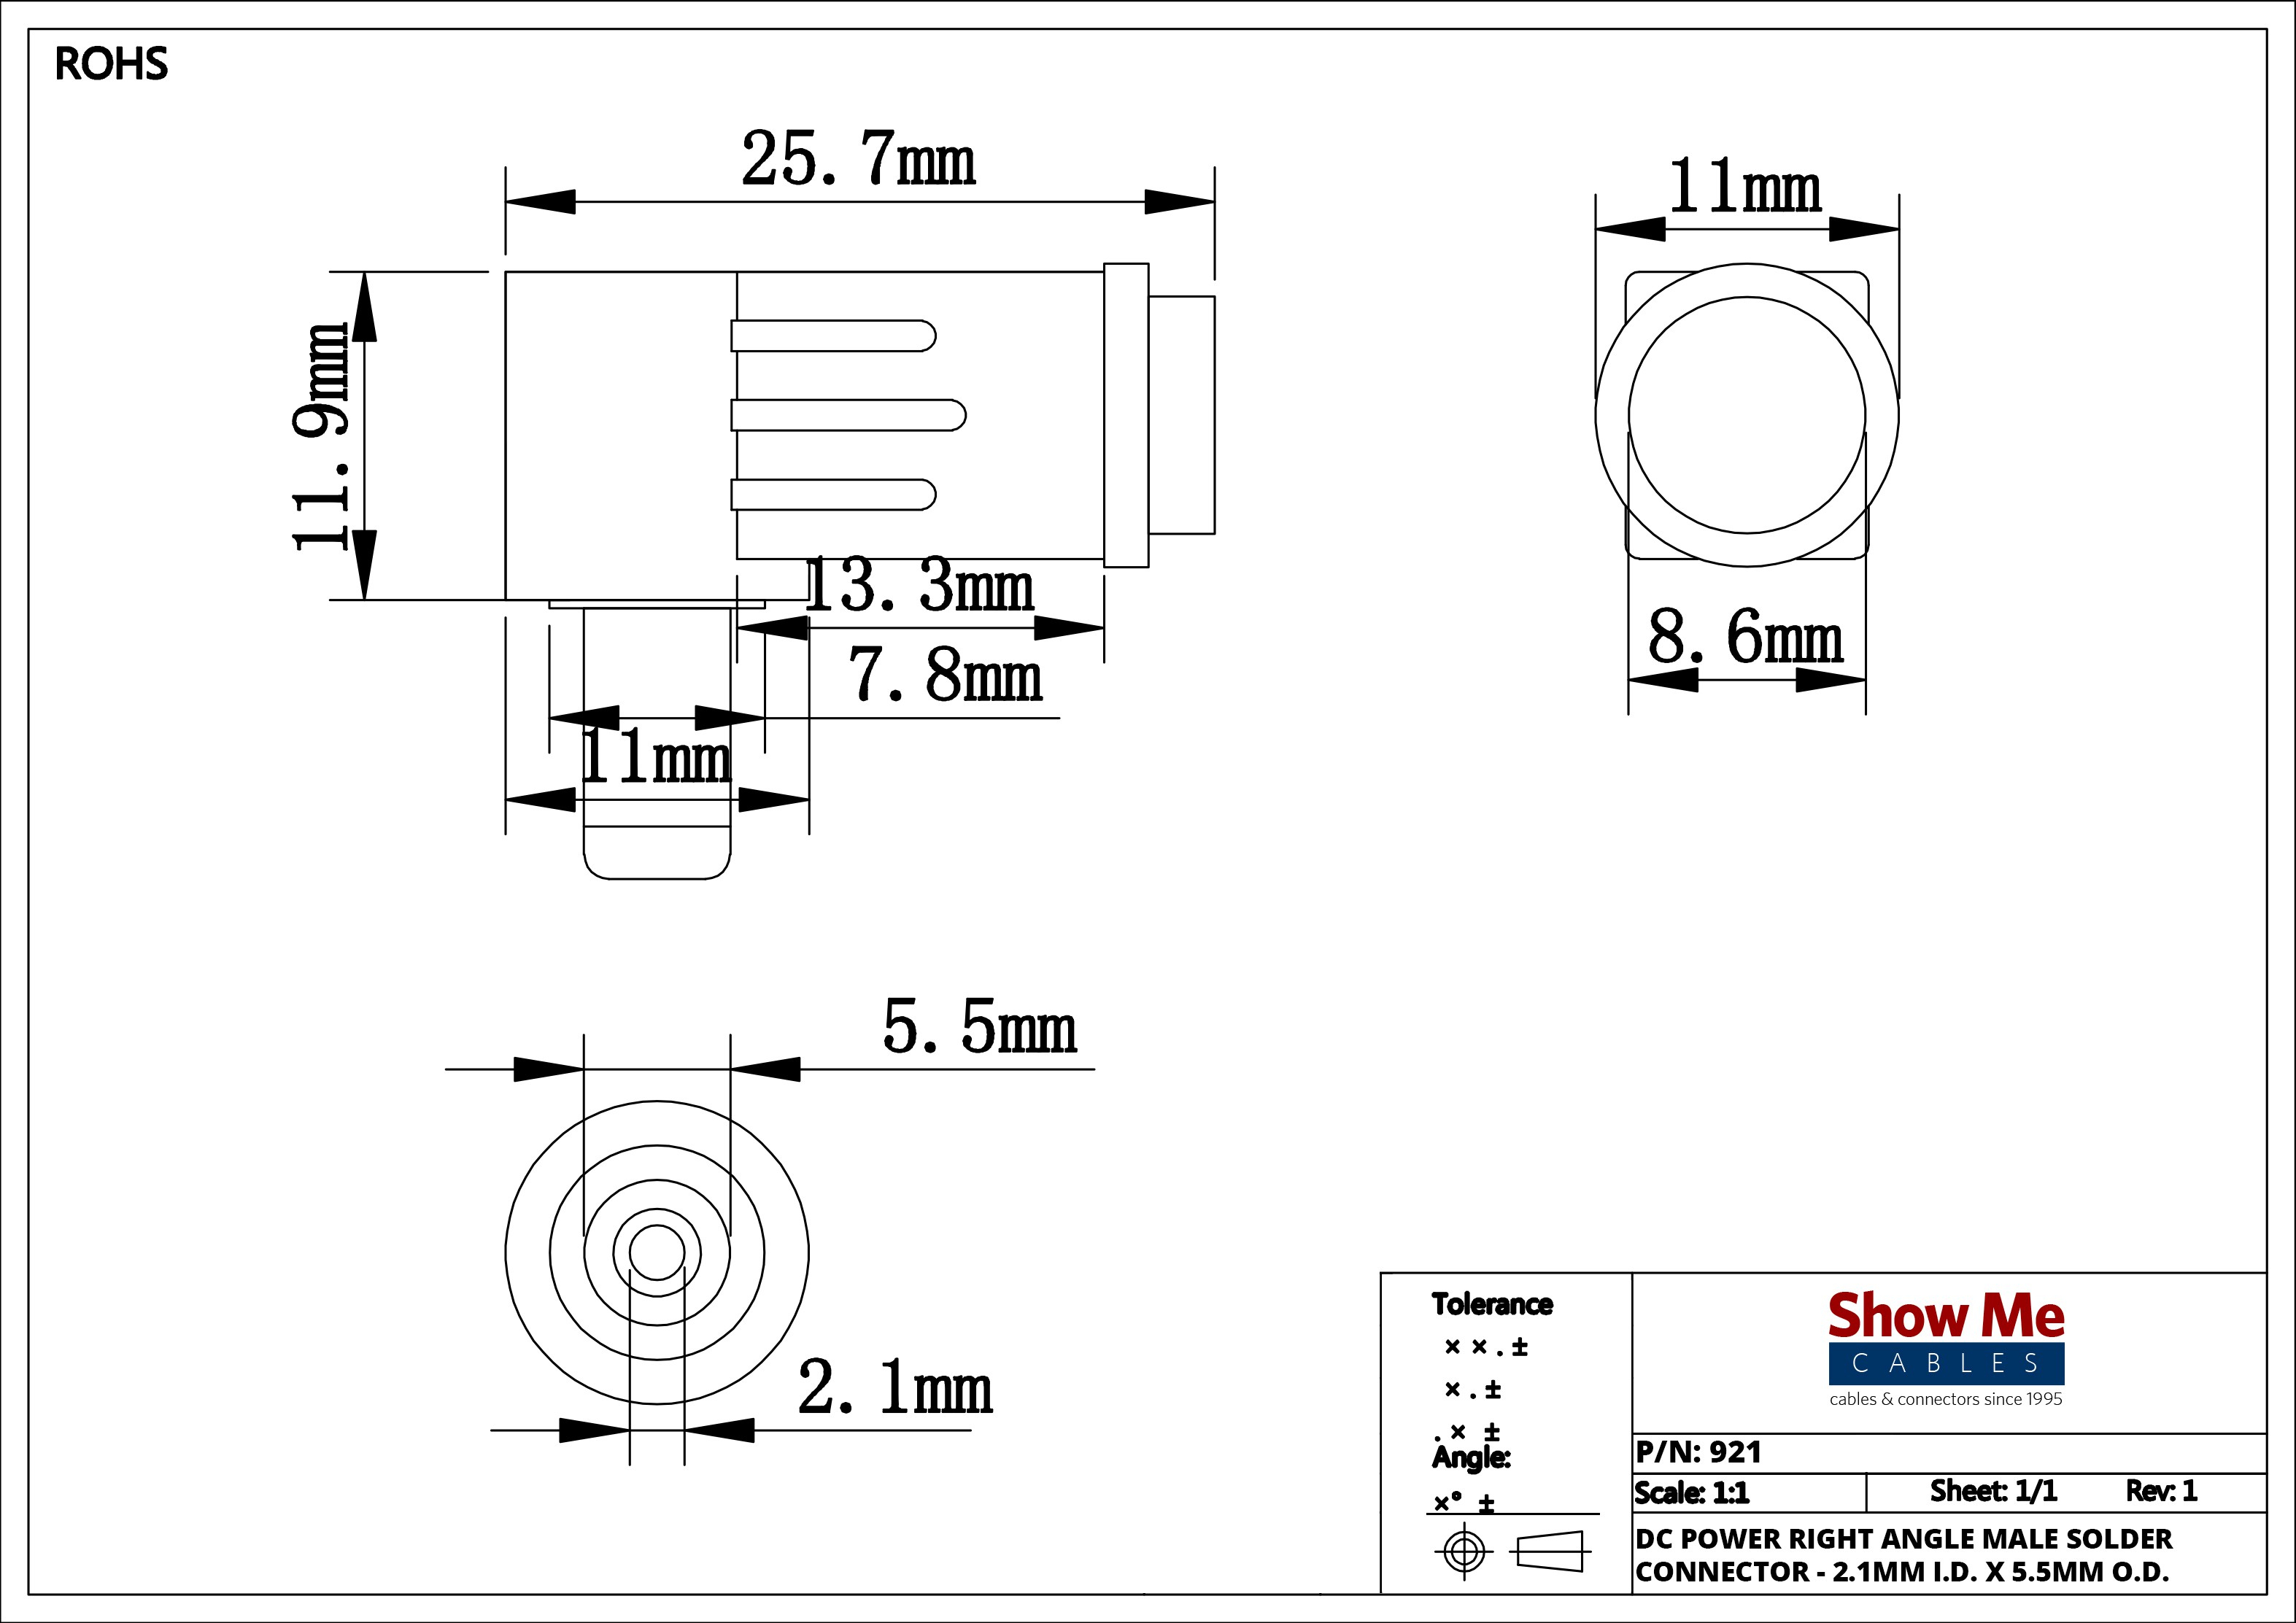 Wiring Diagram For Chrysler 300 Simple Guide About 2006 Radio Home Speaker Gallery Sample 2005